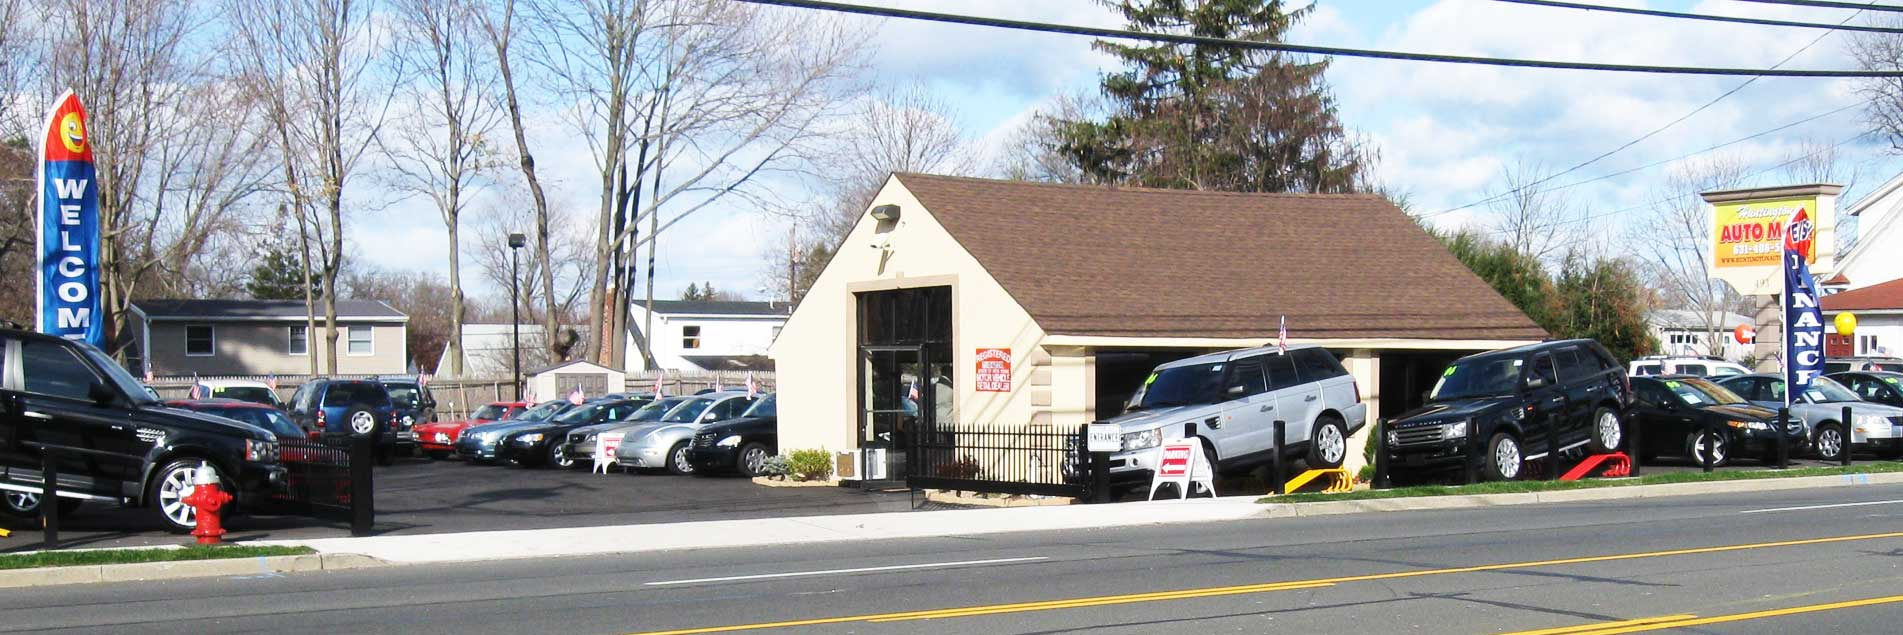 Used Car Dealer In Huntington Station Long Island Queens